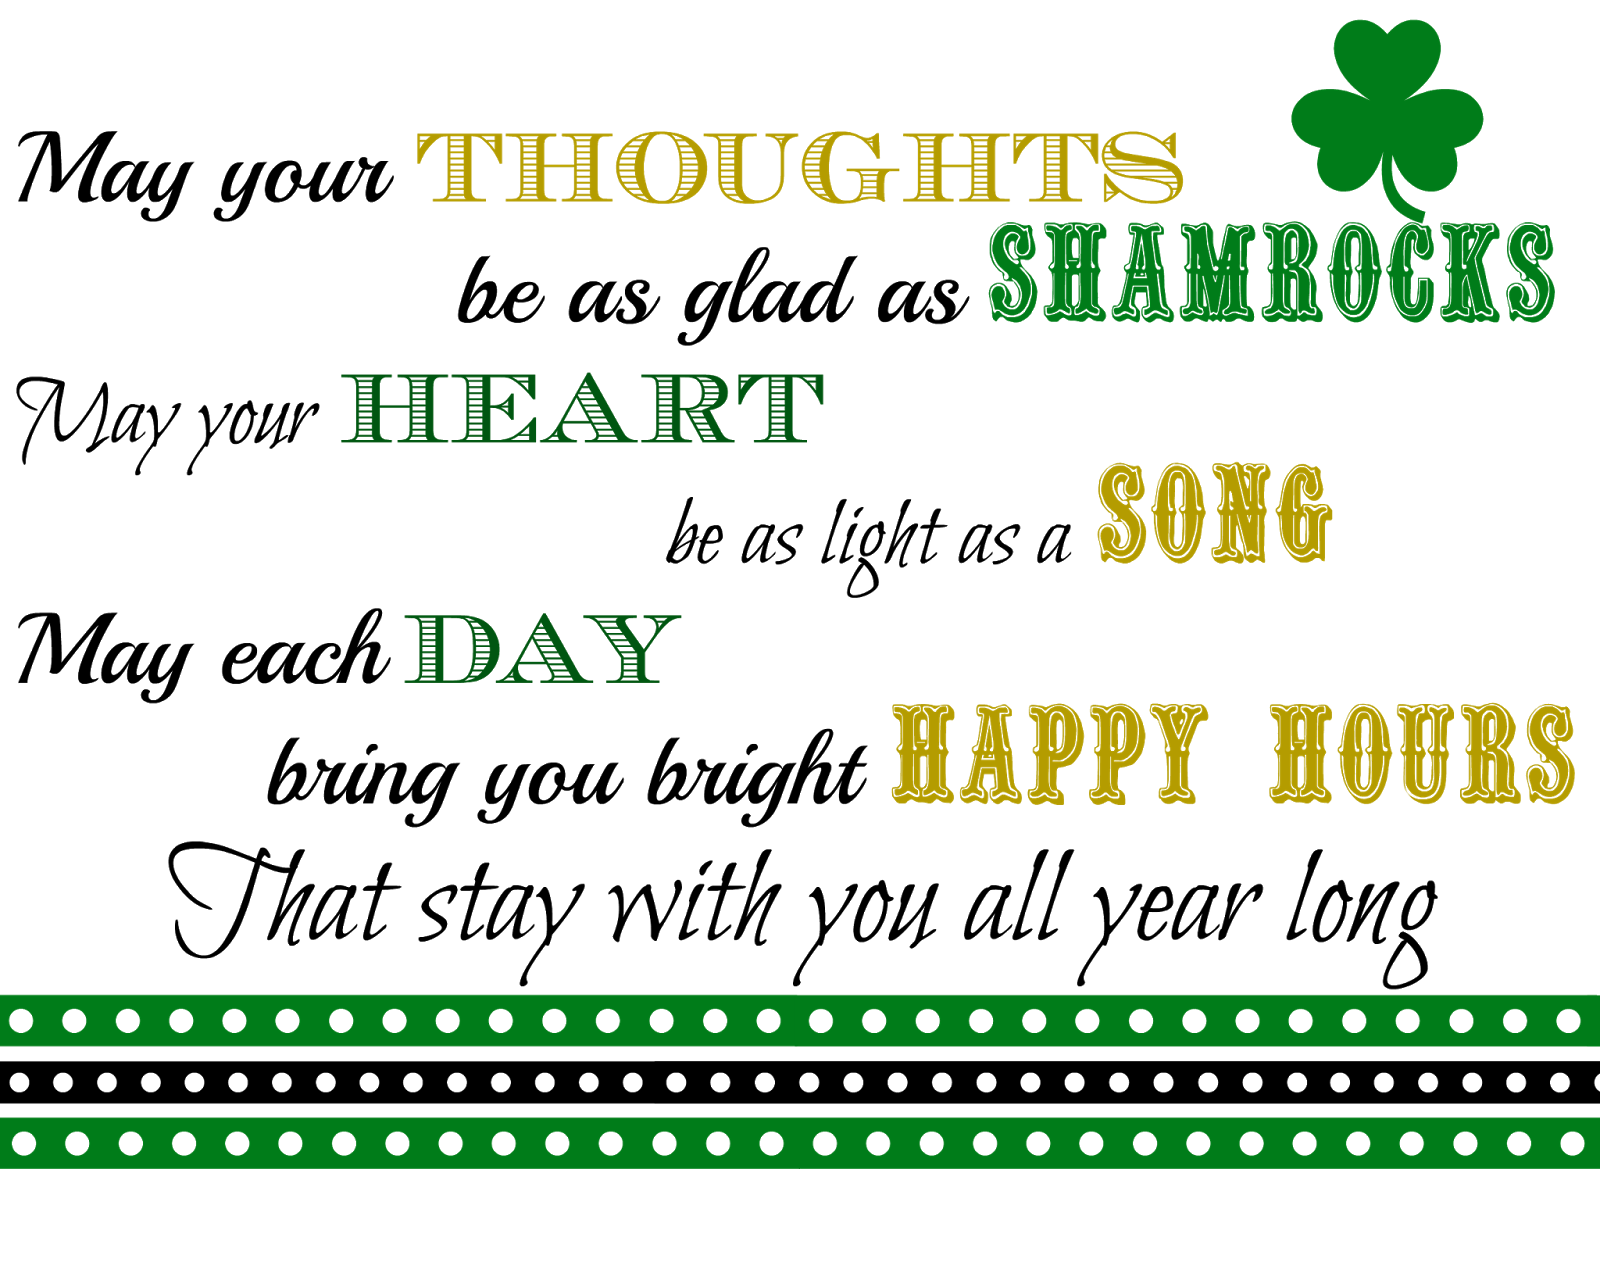 May your Thoughts be as glad as Shamrocks, May your Heart be as light as a Song, May each Day bring you bright Happy Hours That stay with you All Year Long